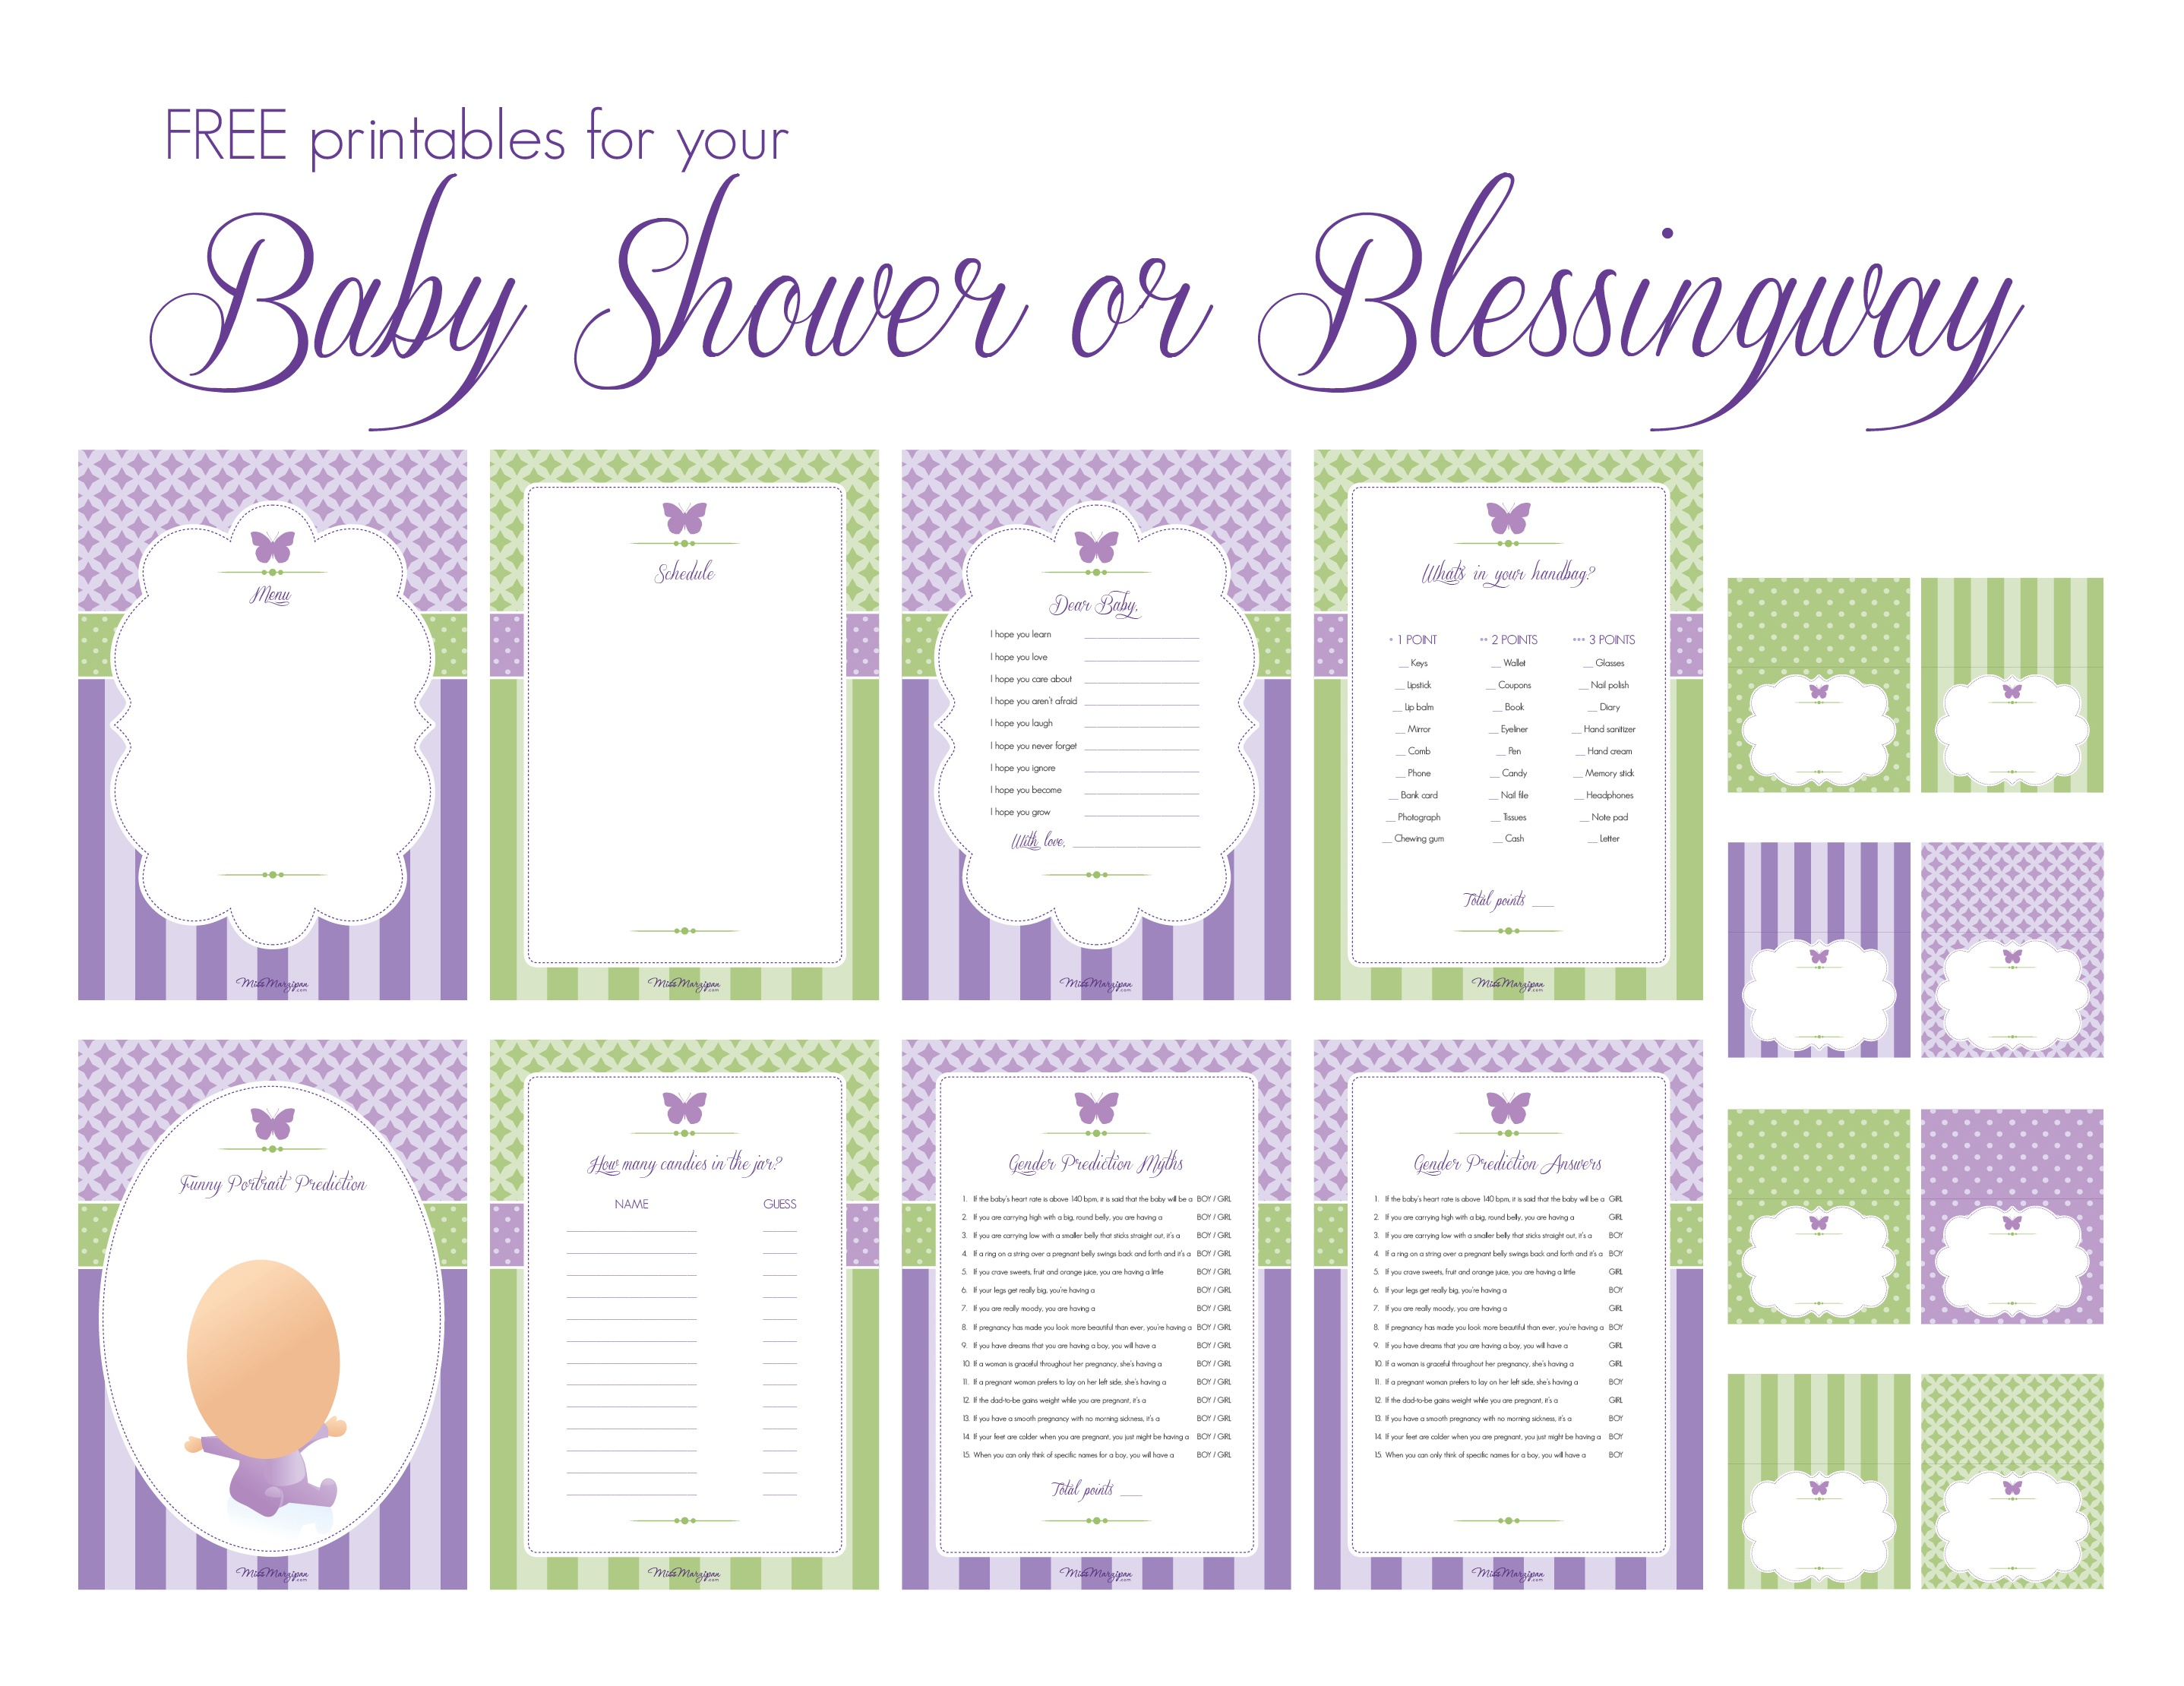 Photo : Printable Baby Shower Games Image - Free Printable Baby Shower Decorations For A Boy